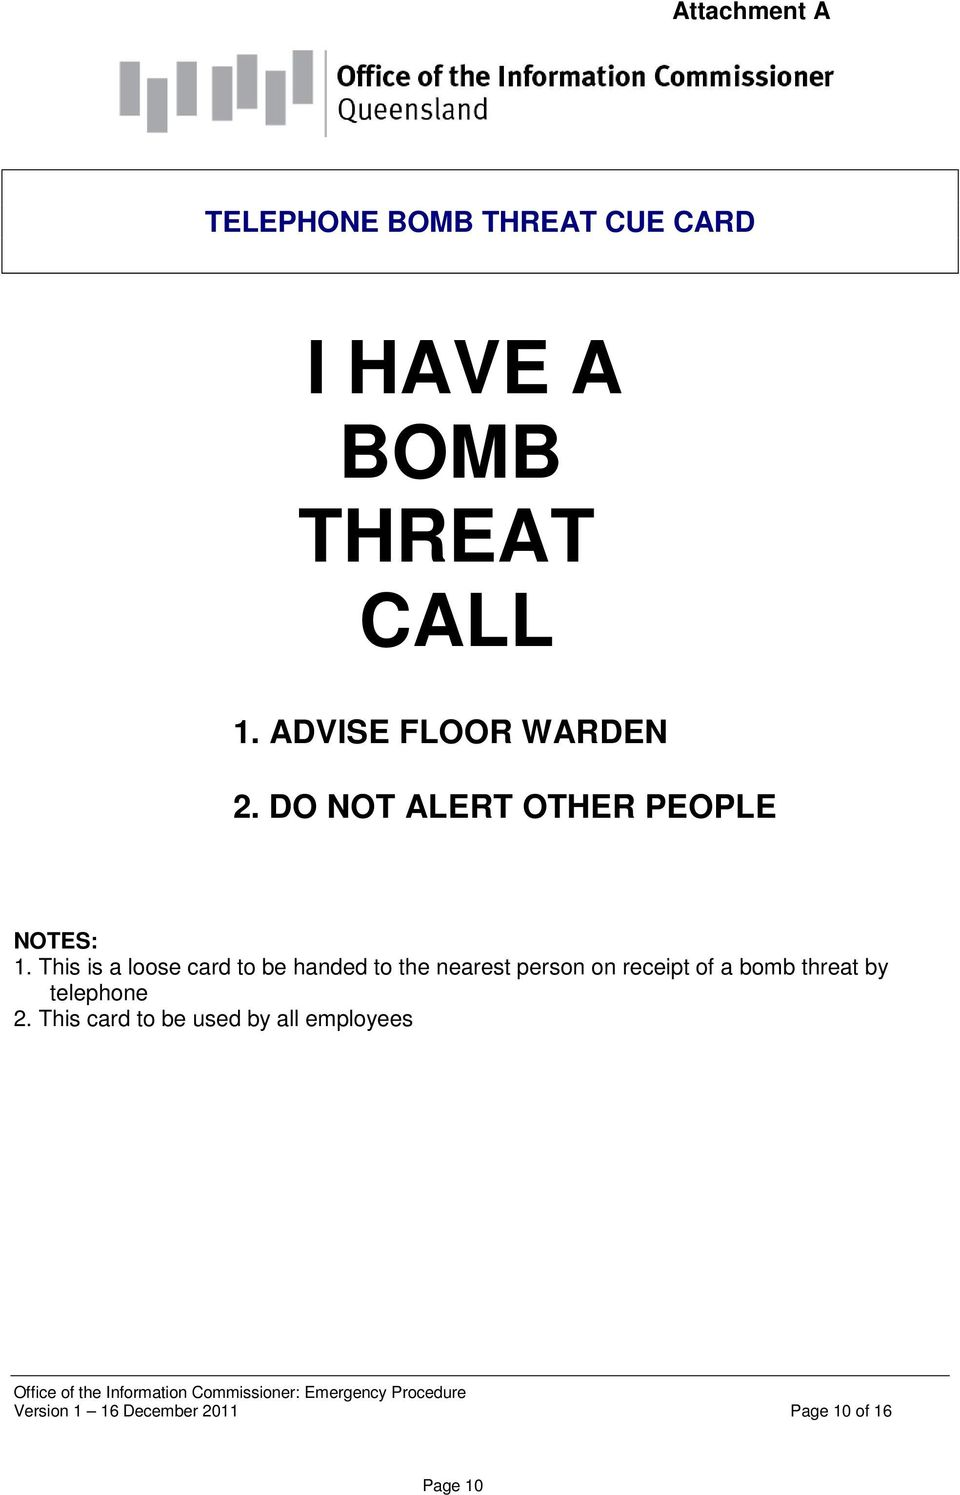 This is a loose card to be handed to the nearest person on receipt of a bomb